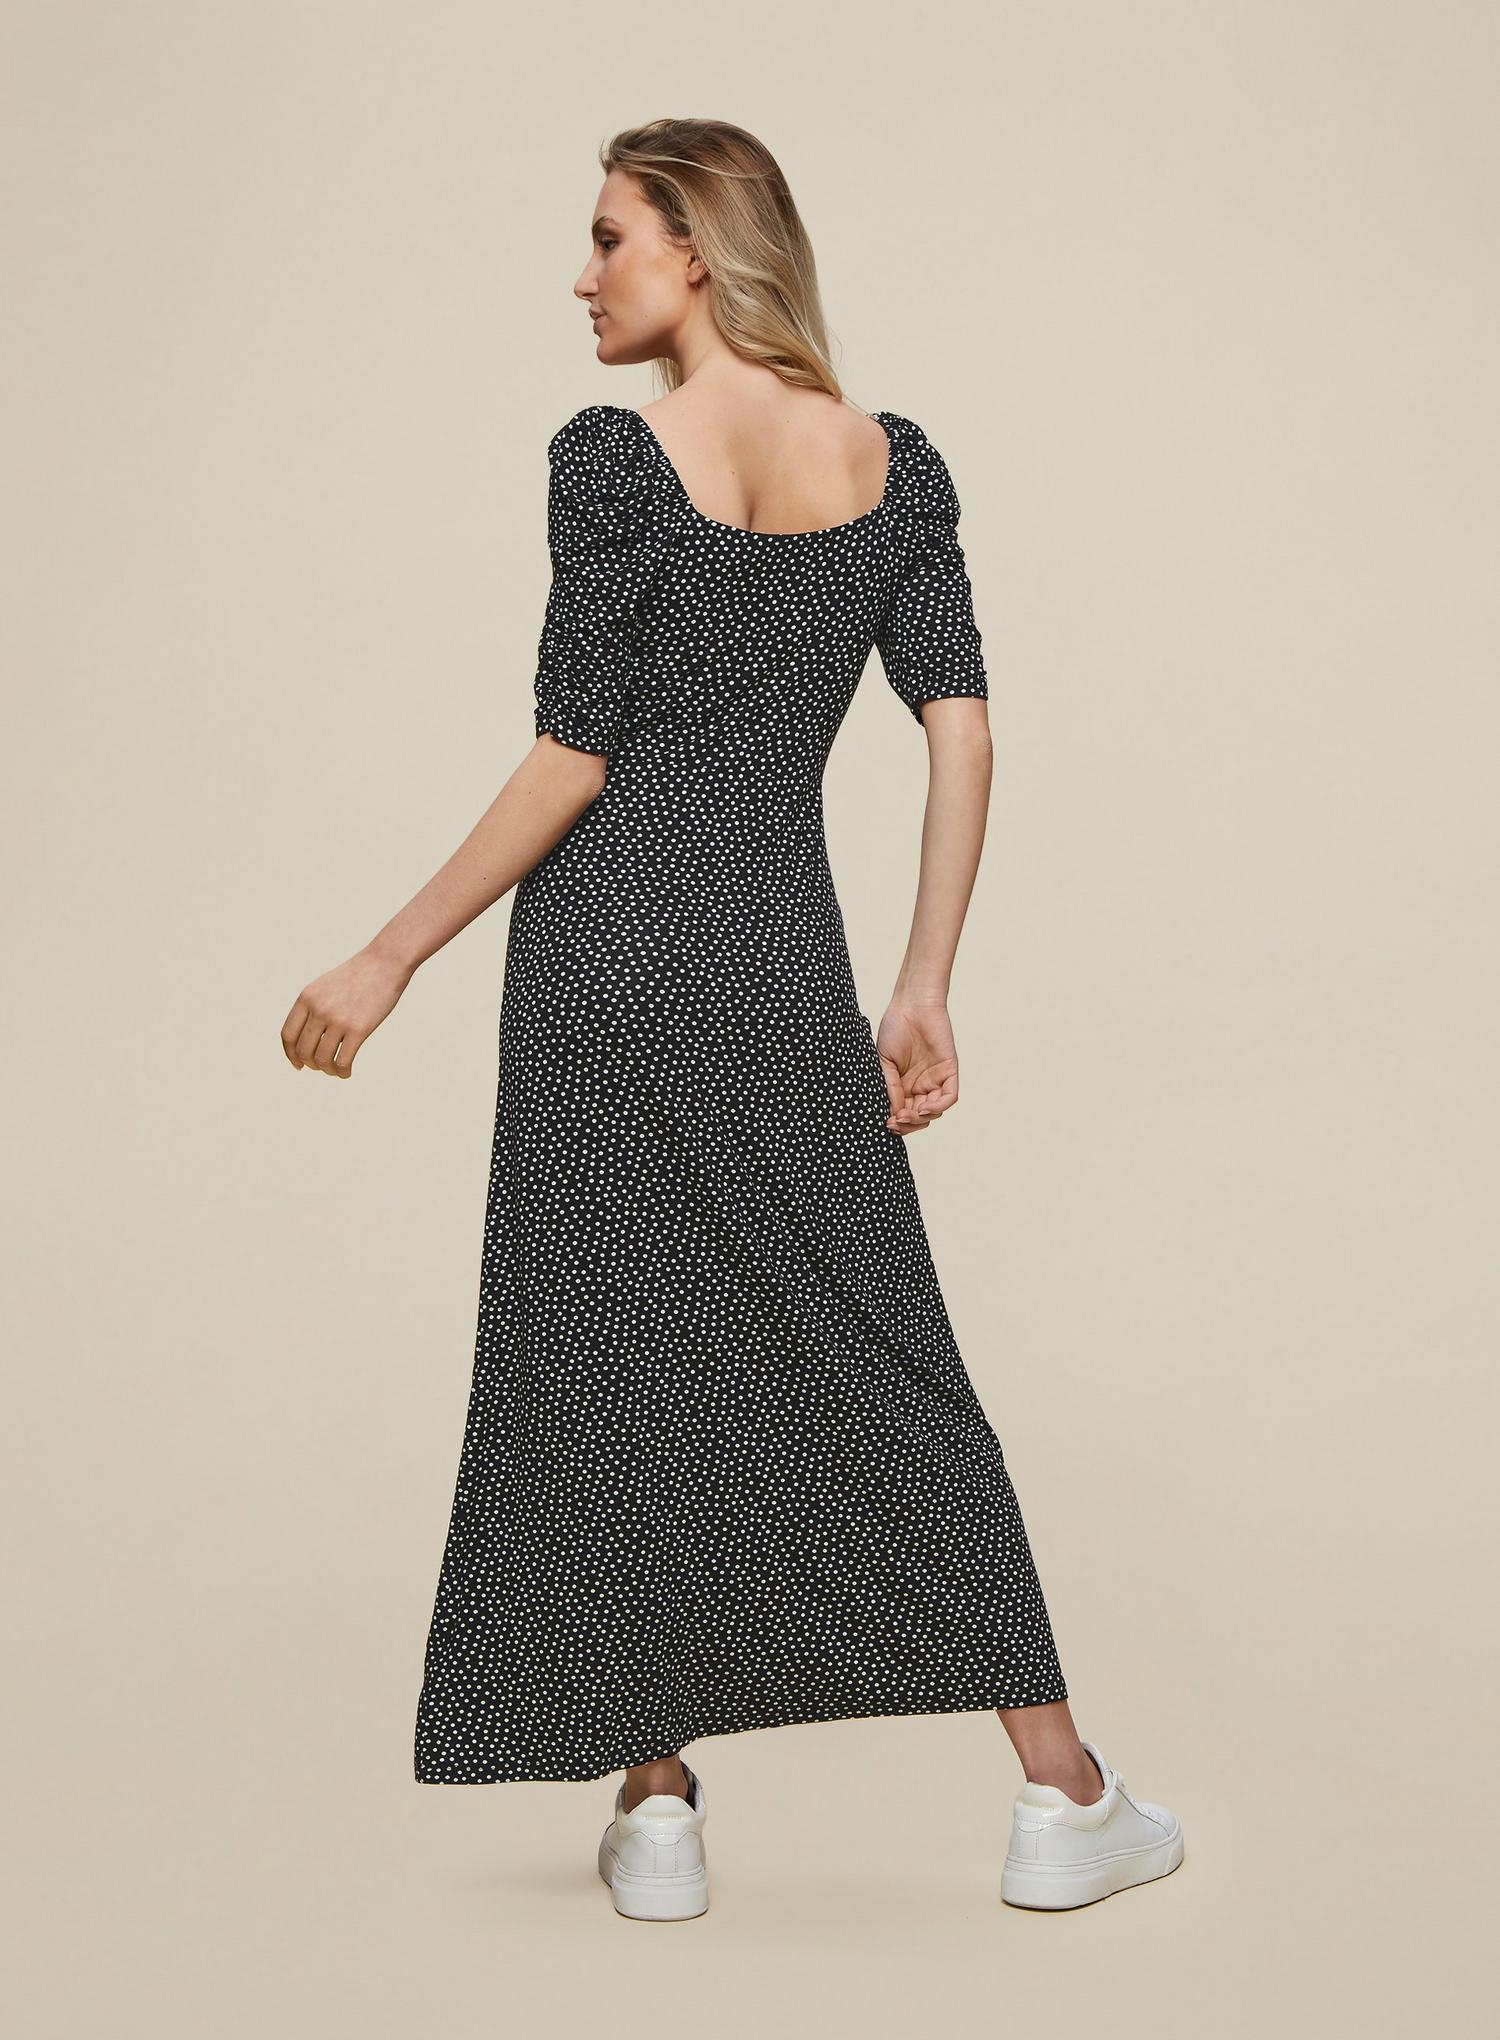 105 Black Spot Print Midi Dress image number 4